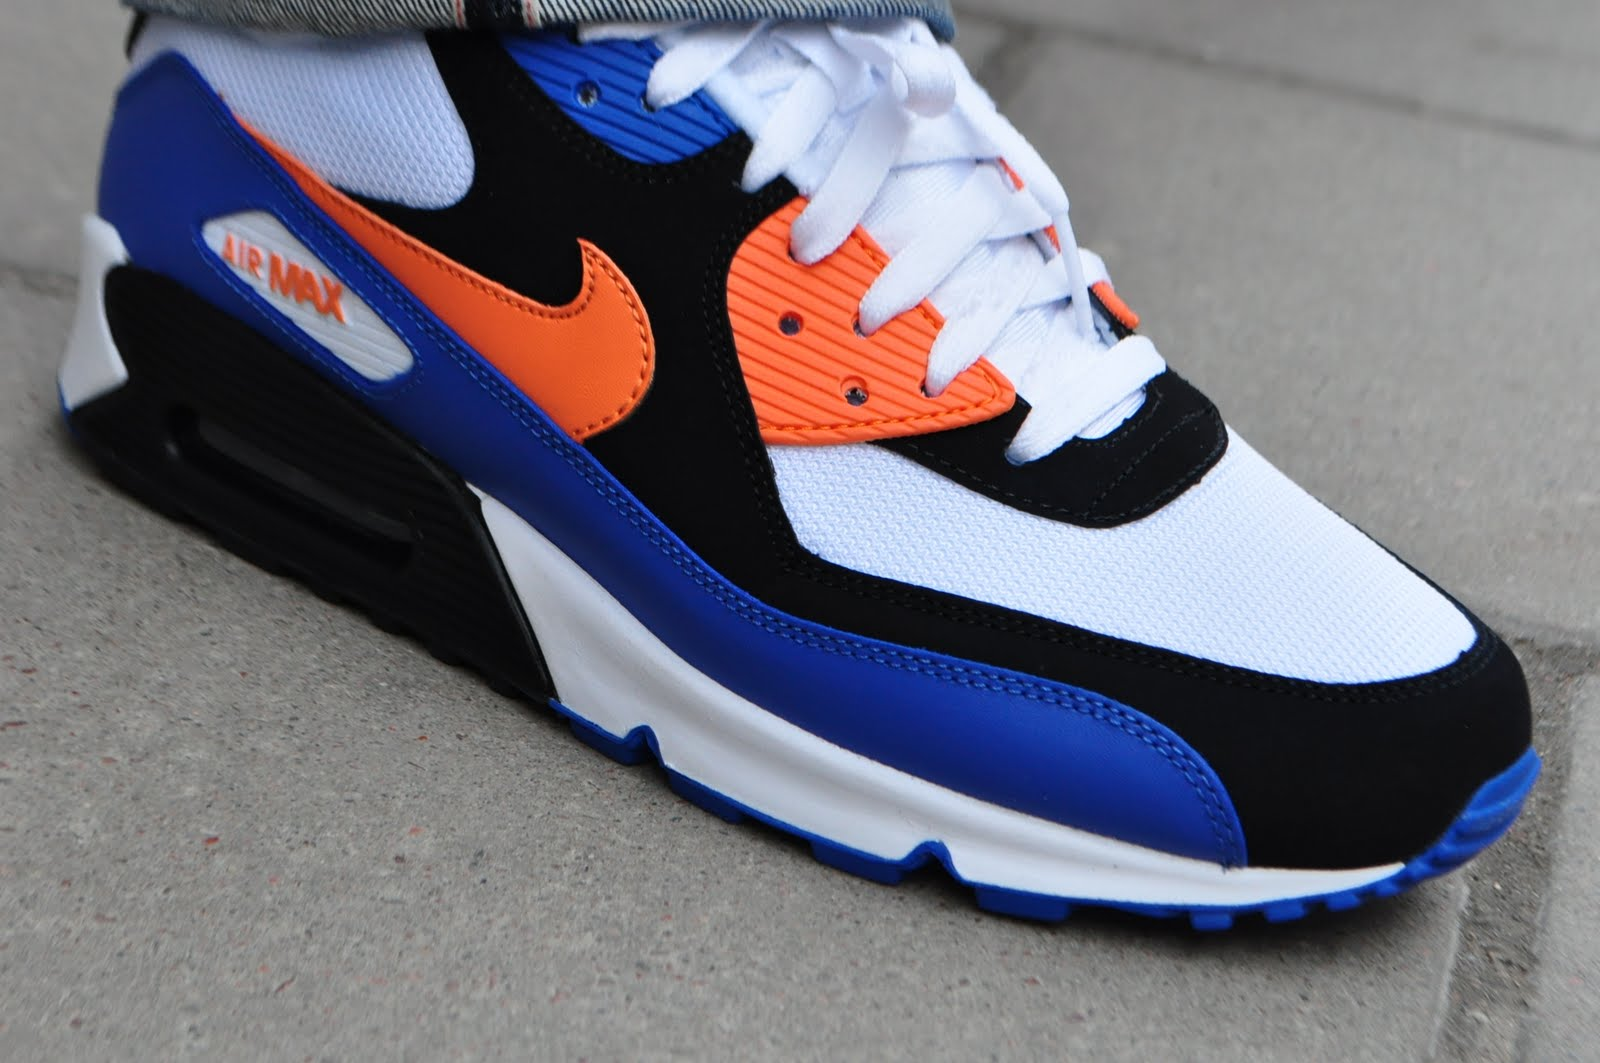 Erudito Estándar Viscoso  Six Feet Down: Nike Air Max 90 new colorways